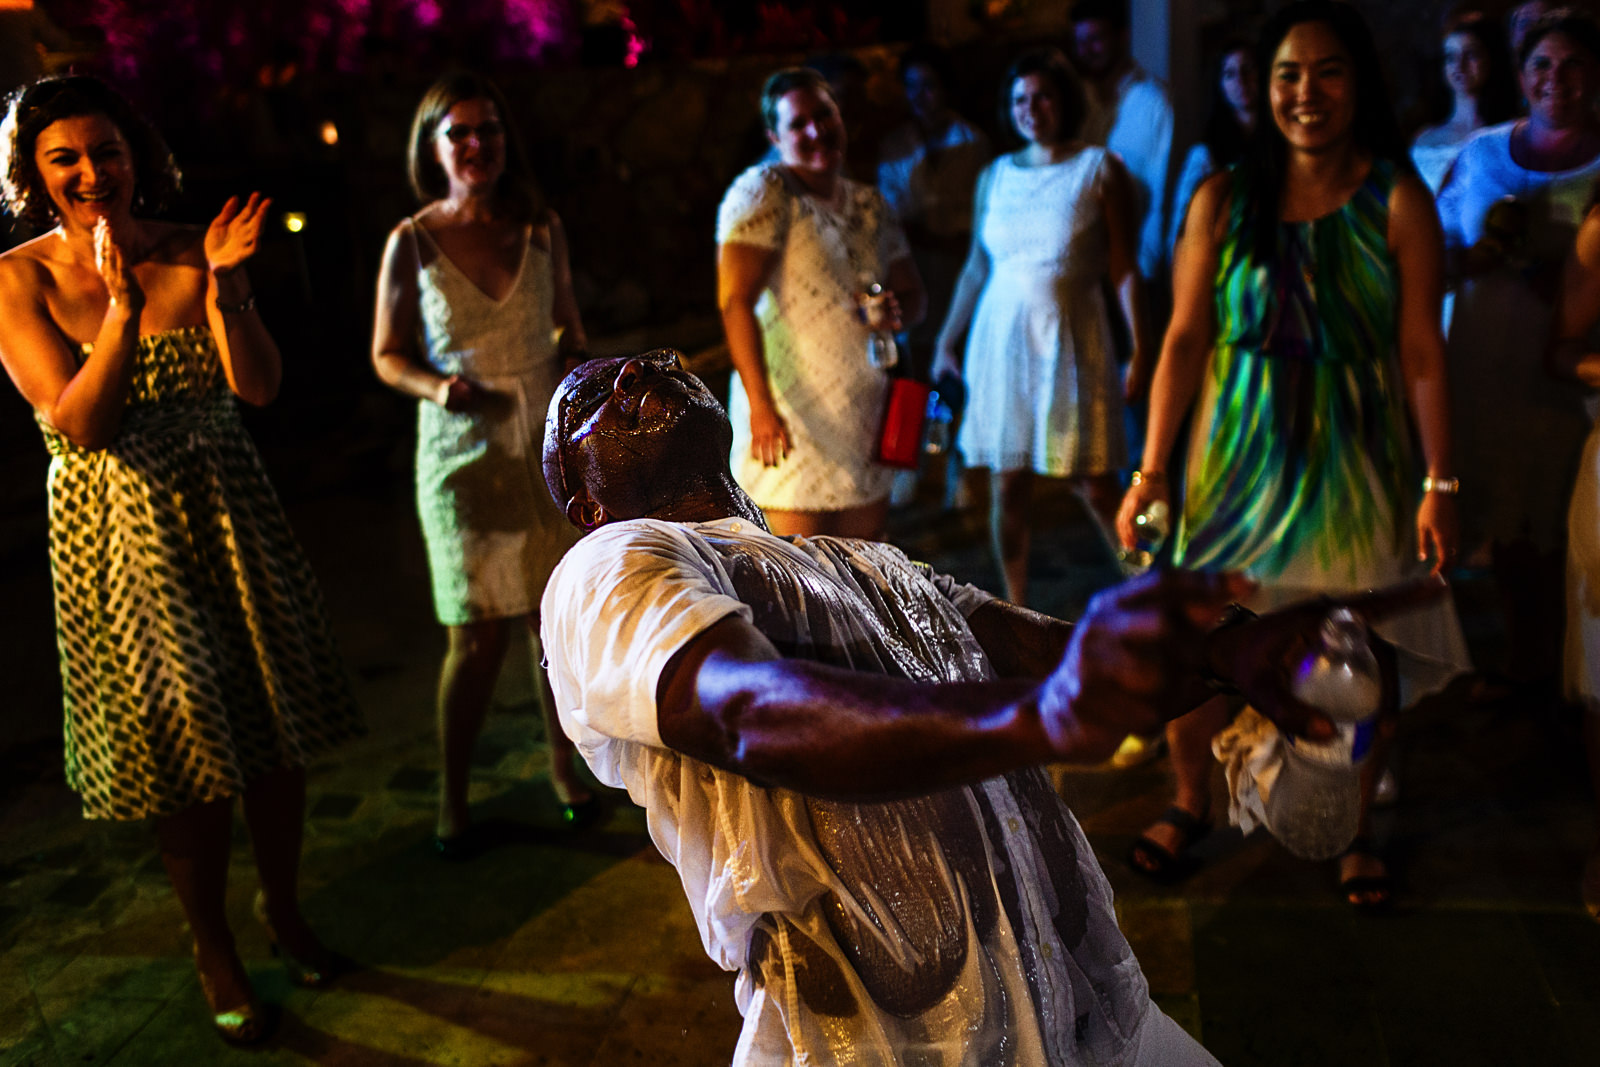 Wedding guest soaked wet dance intensively while other guest laugh and enjoy